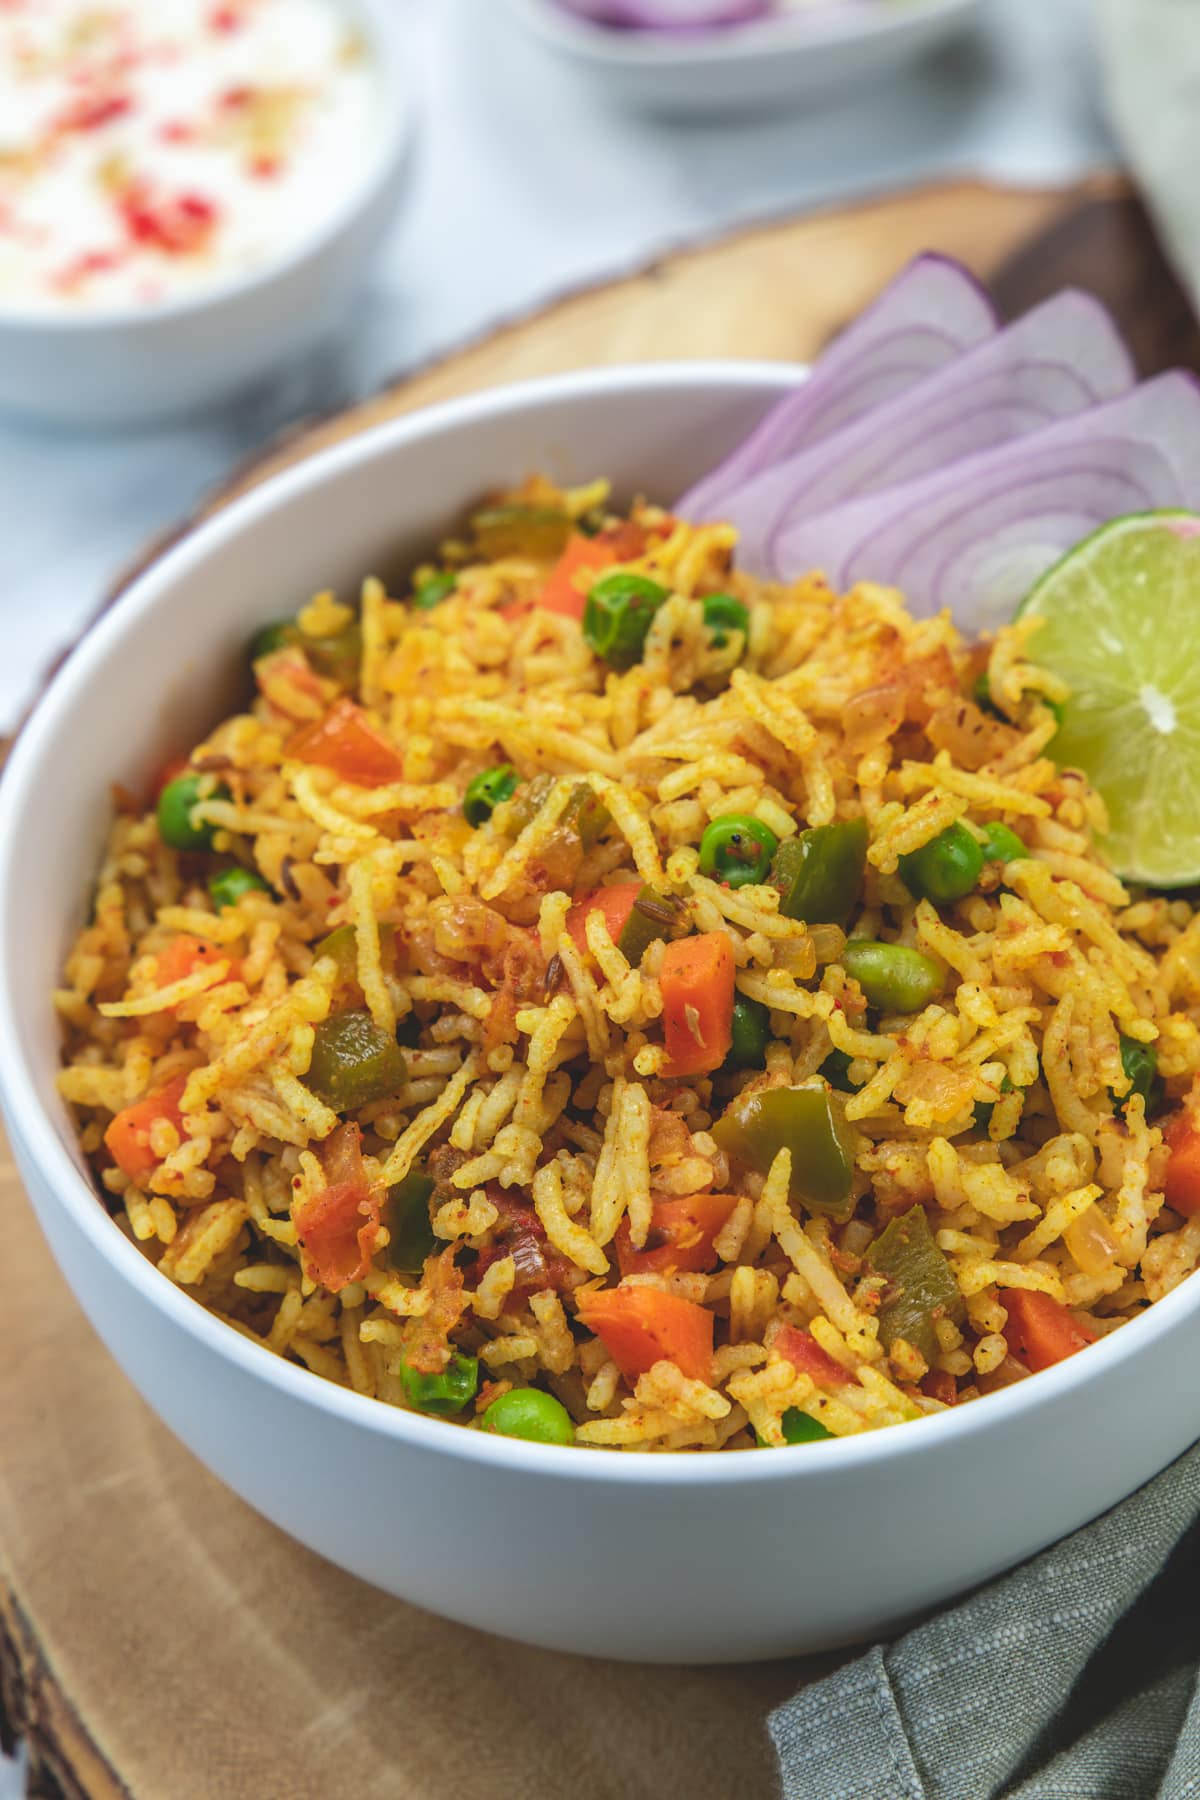 Tawa pulao in a bowl garnished with onion rings and lime wedge.